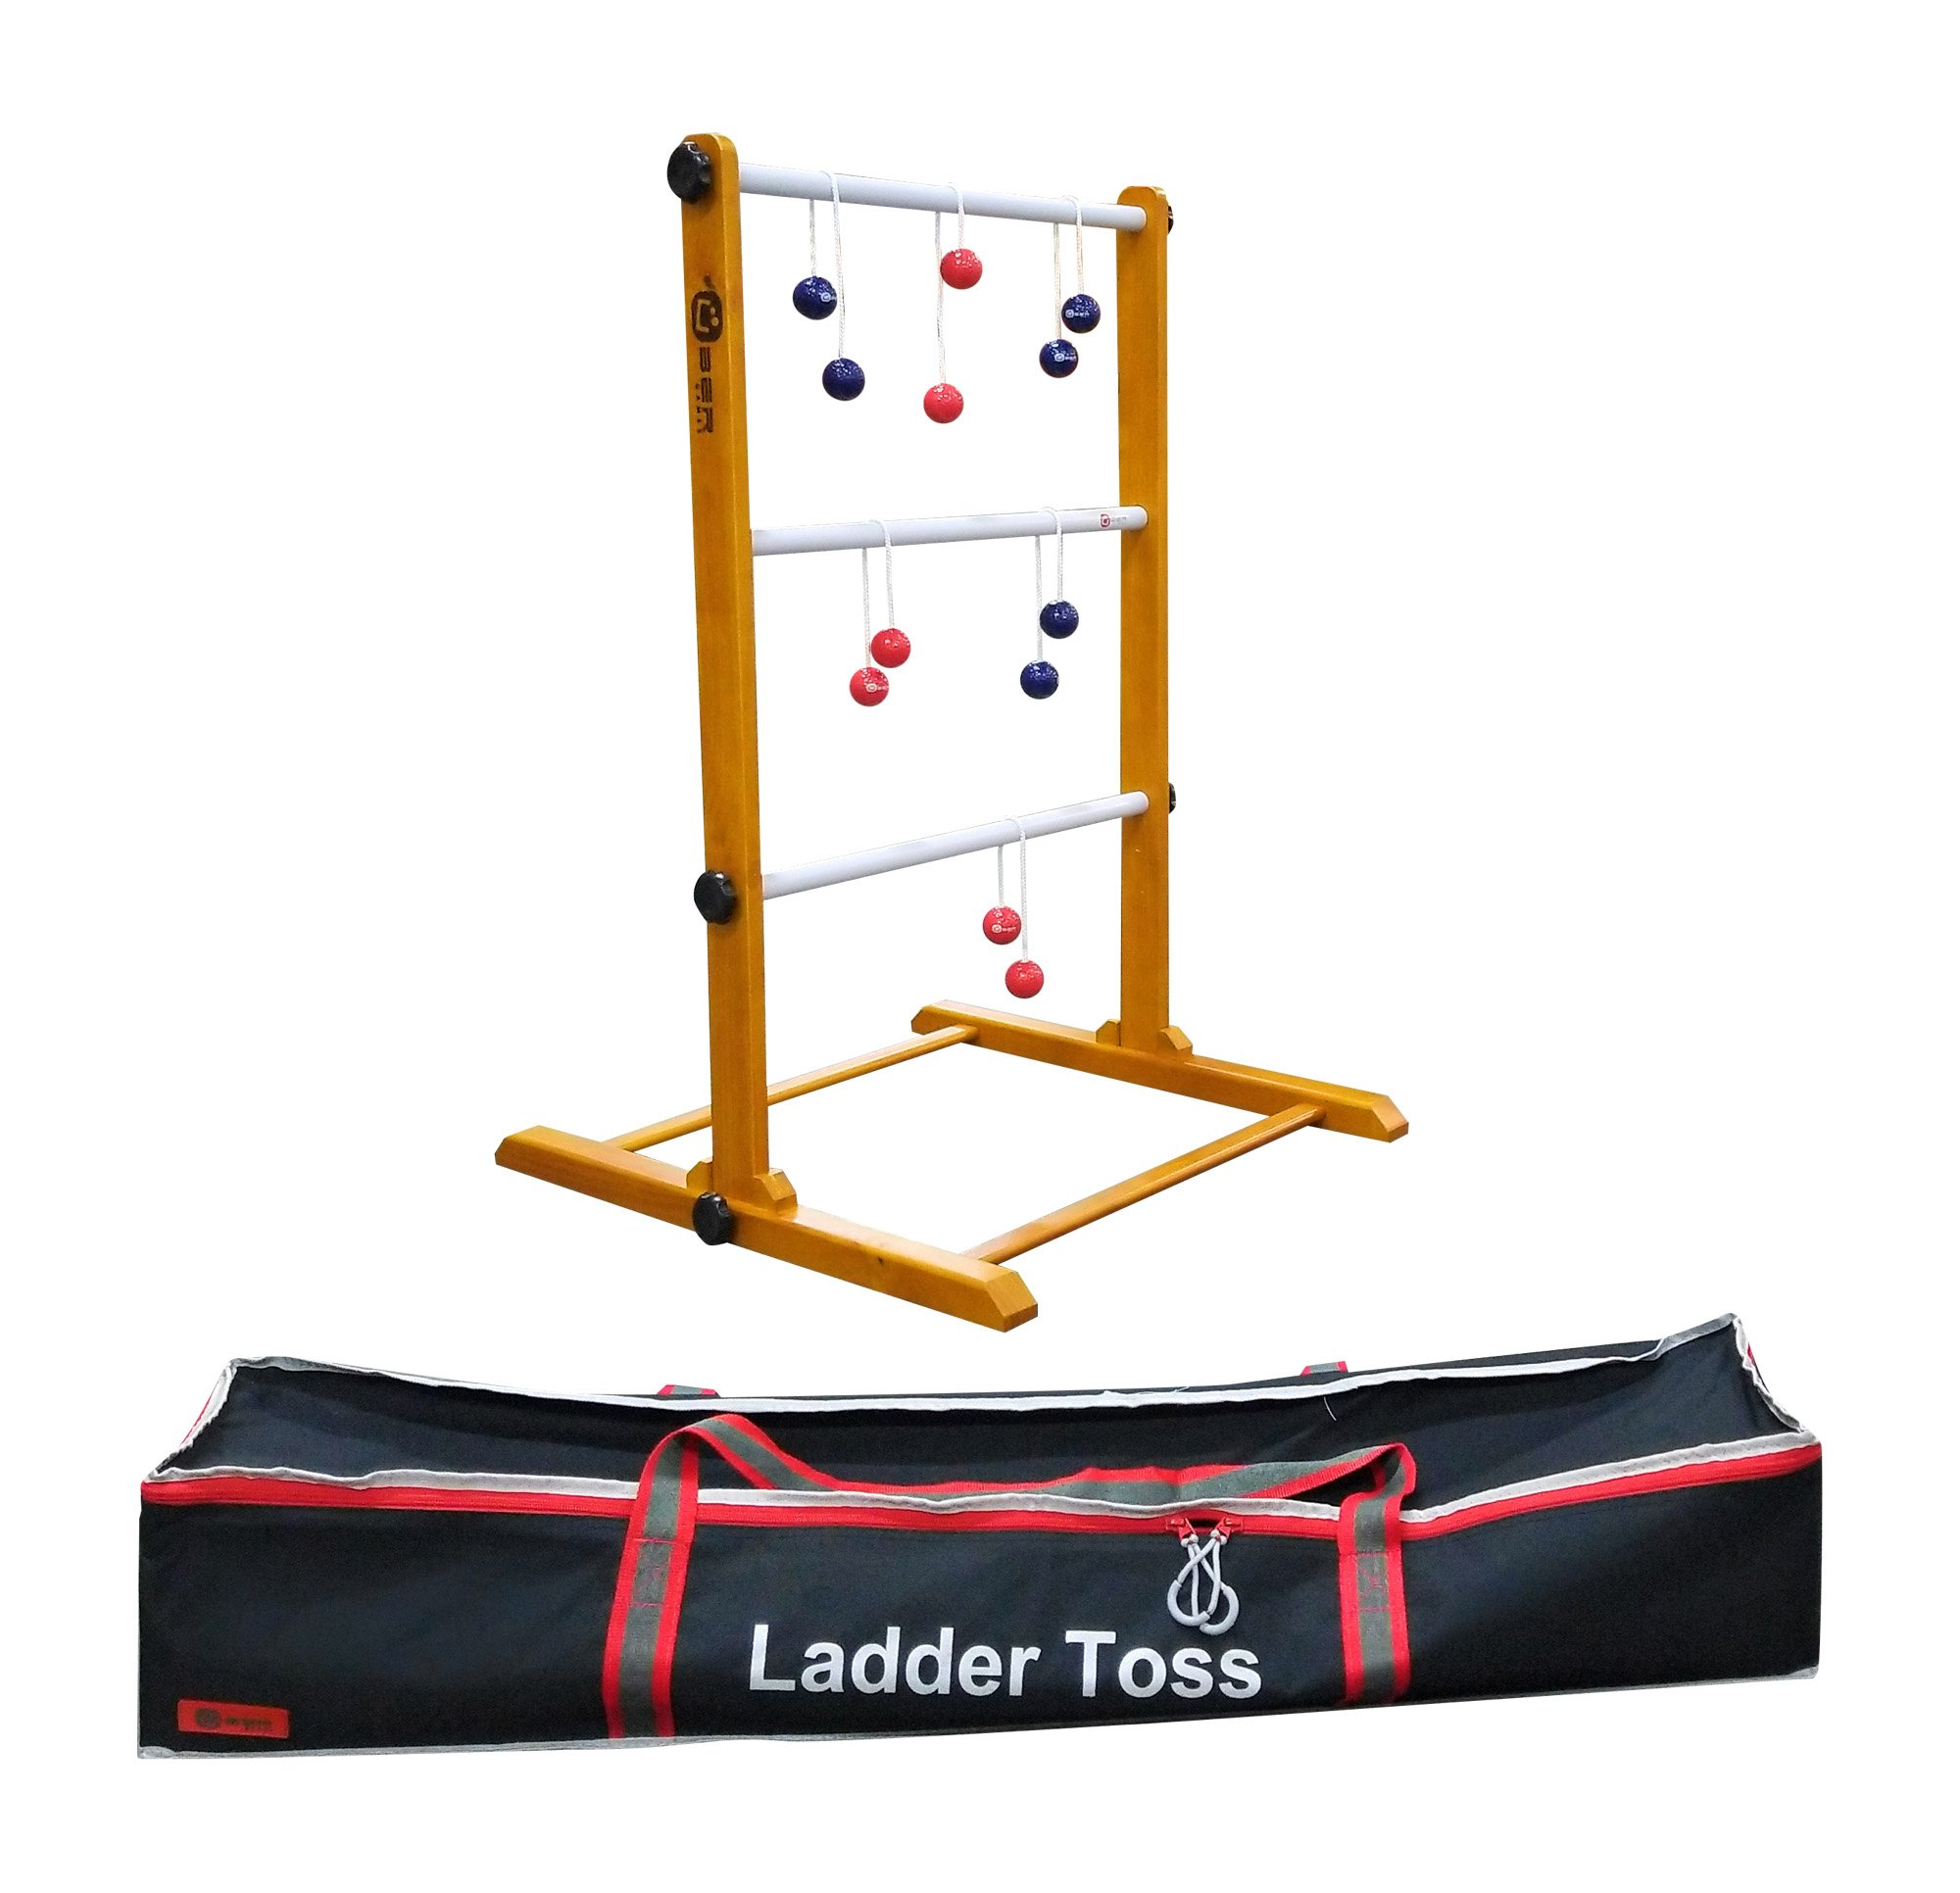 Uber Games Ladder Toss - Single Game - Navy Blue and Red Bolas